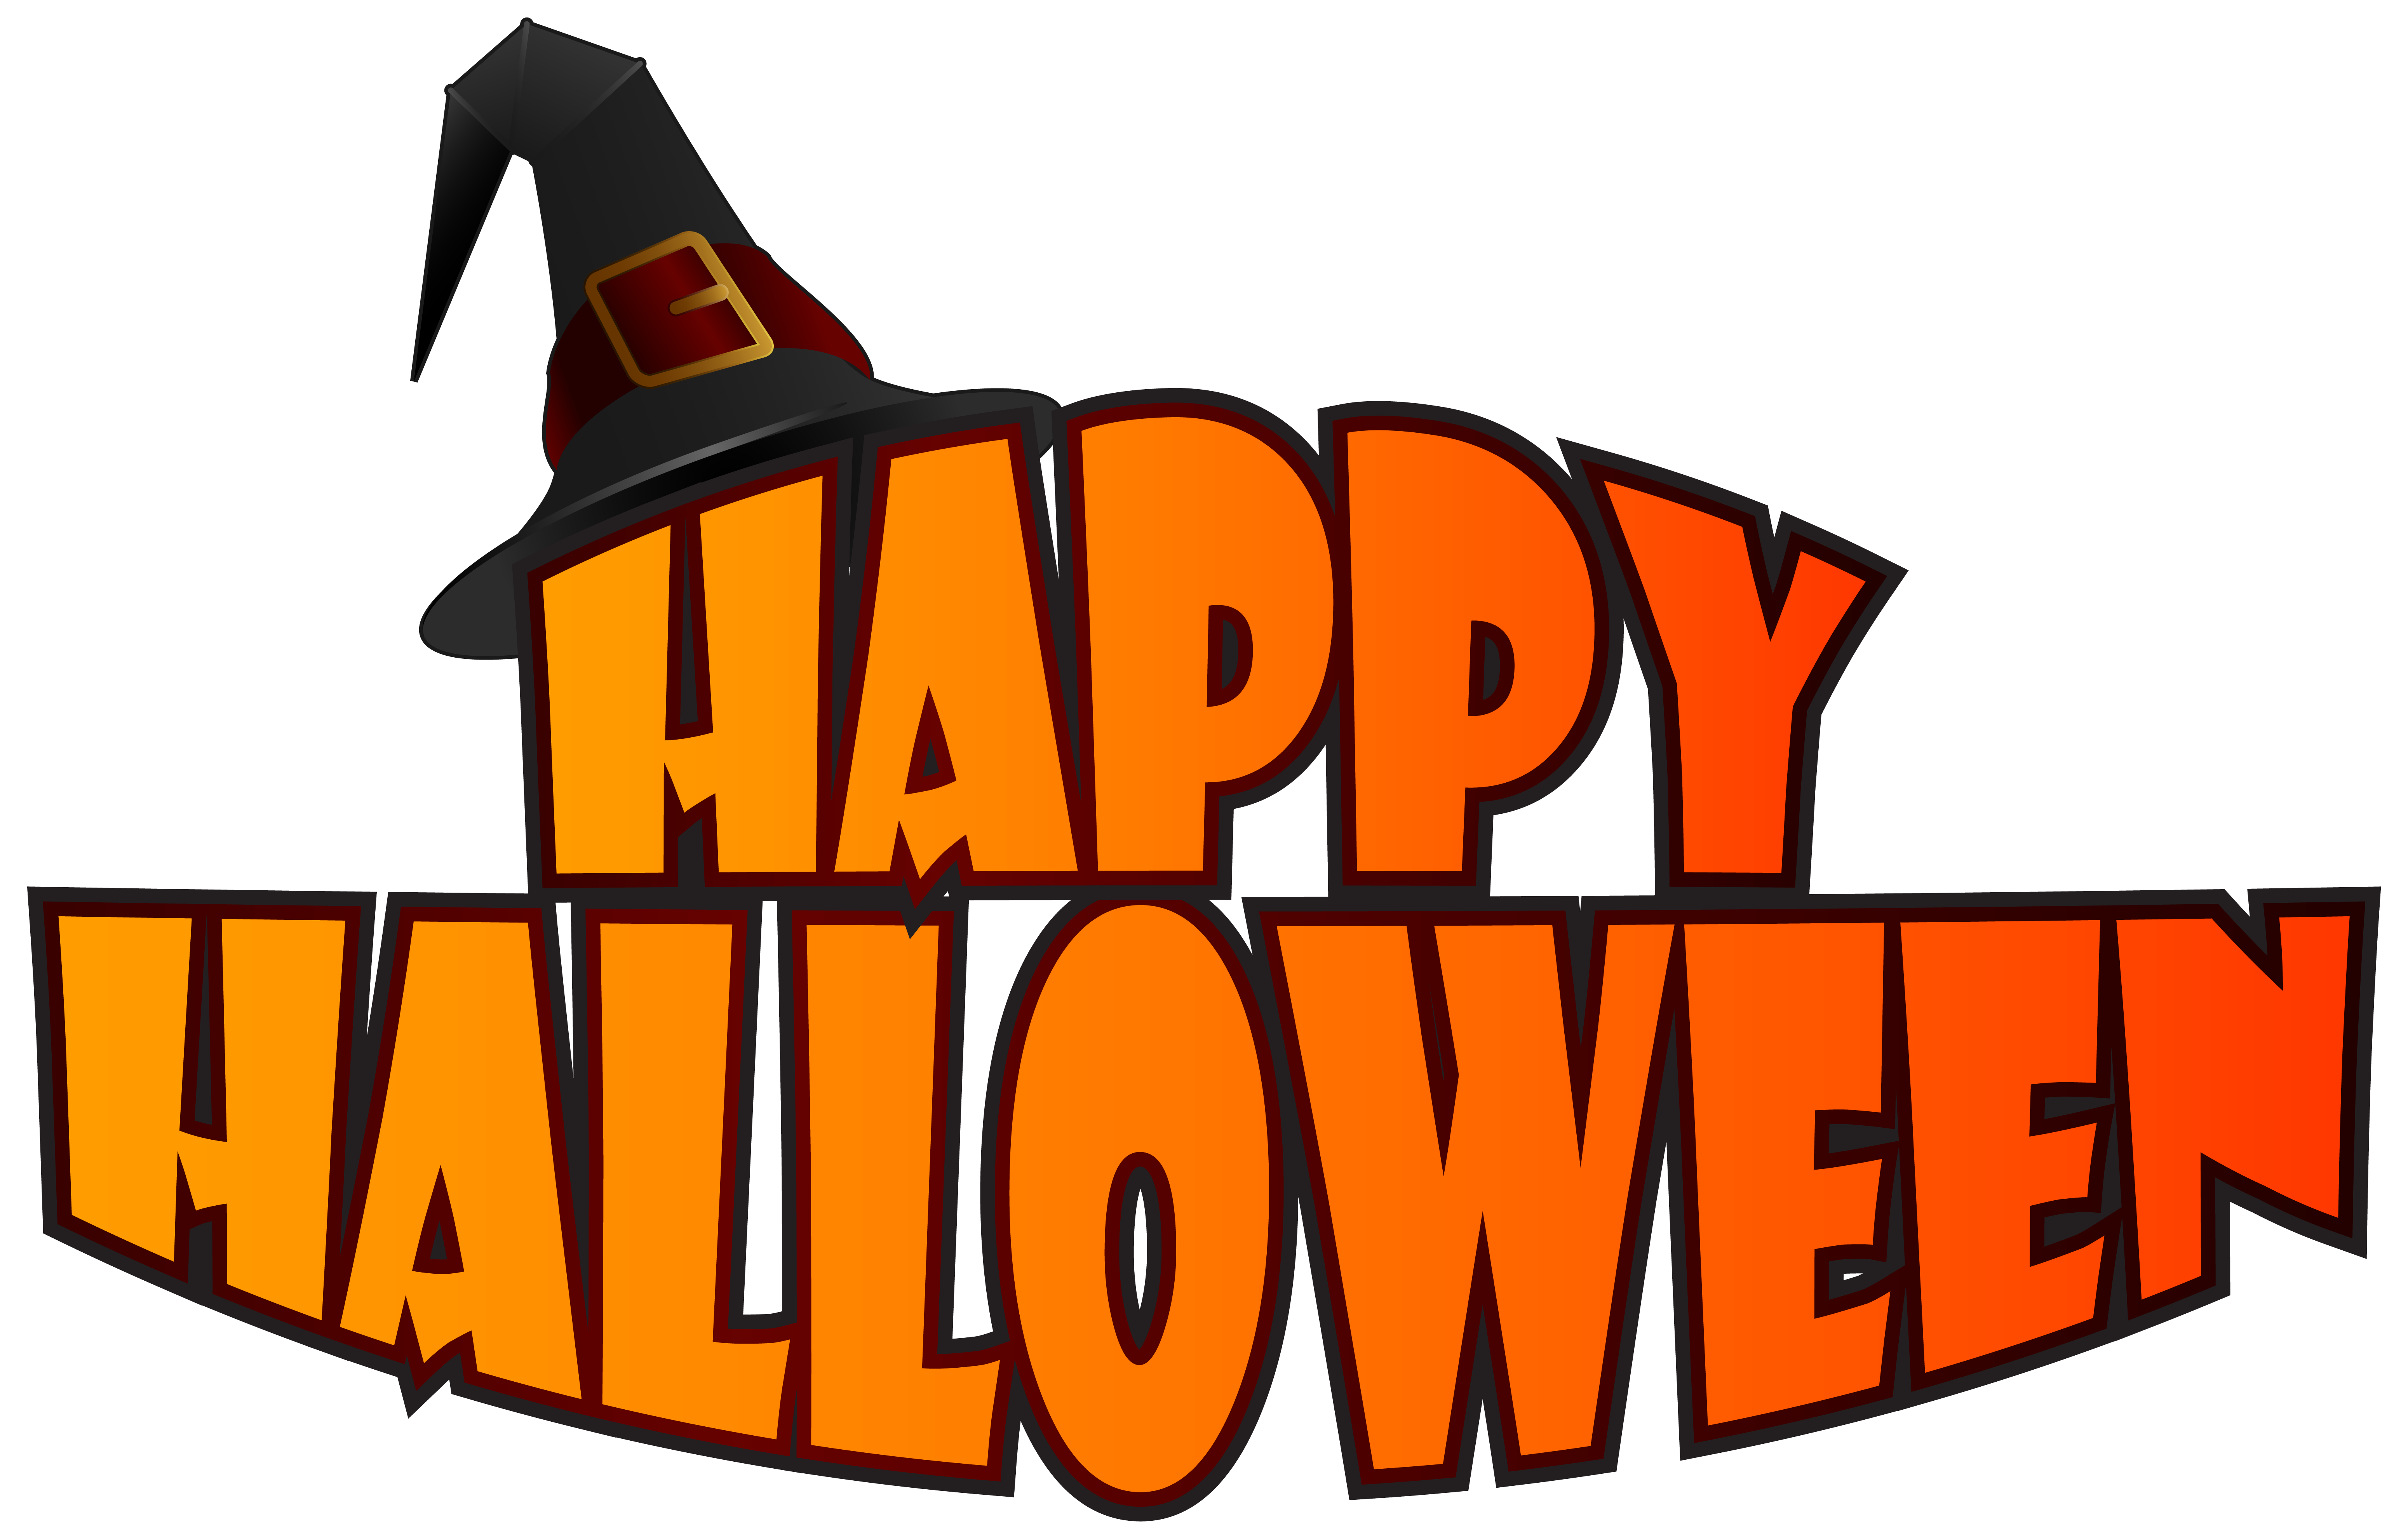 6199x3962 Free Clip Art Images For Halloween Attractive Inspiration Ideas